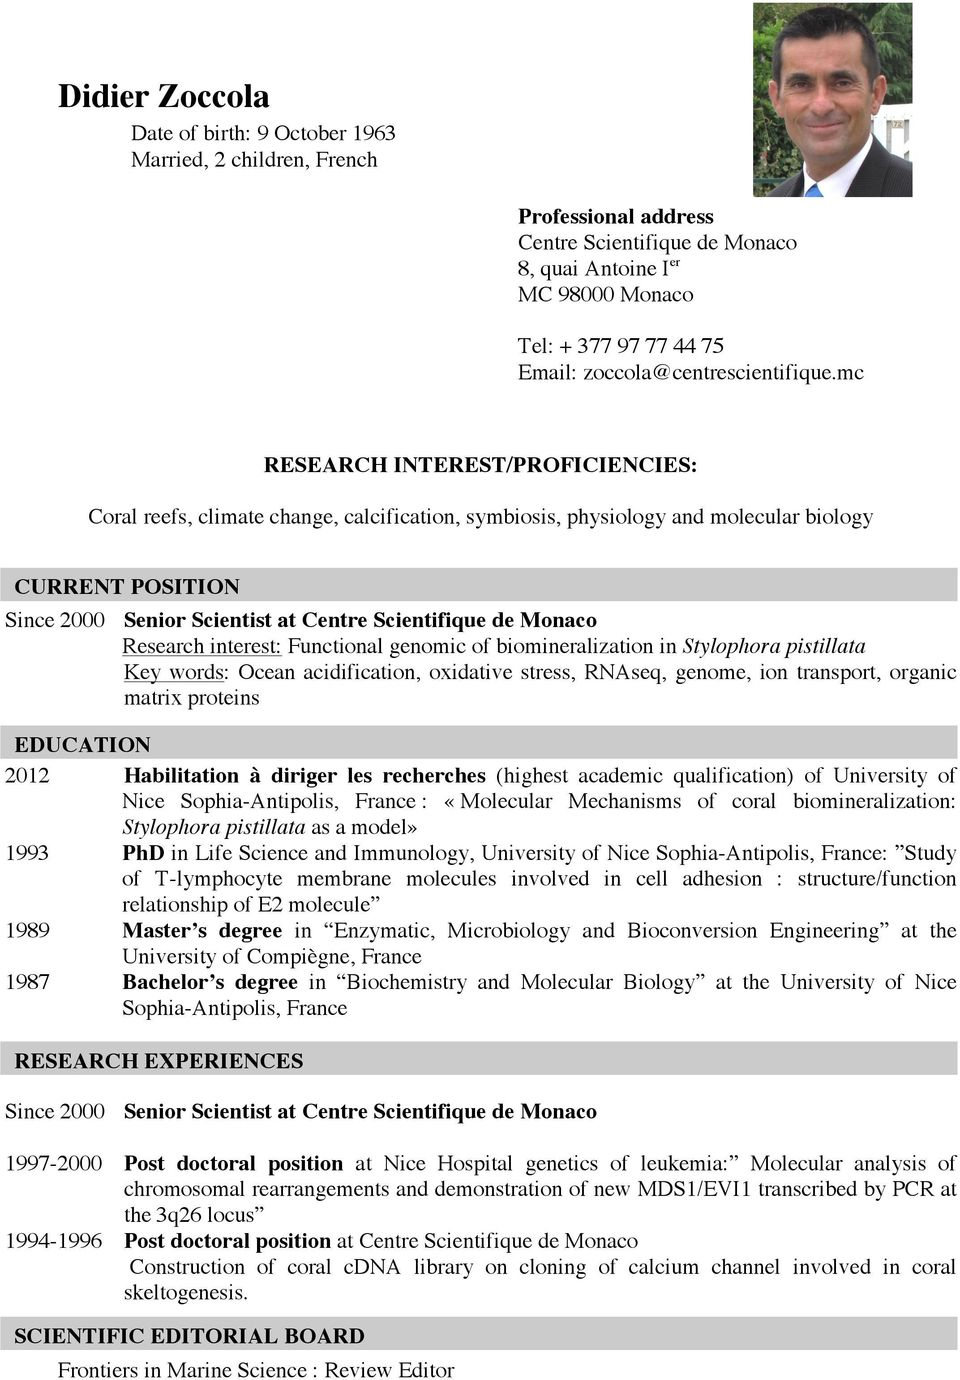 mc RESEARCH INTEREST/PROFICIENCIES: Cral reefs, climate change, calcificatin, symbisis, physilgy and mlecular bilgy CURRENT POSITION Since 2000 Senir Scientist at Centre Scientifique de Mnac Research